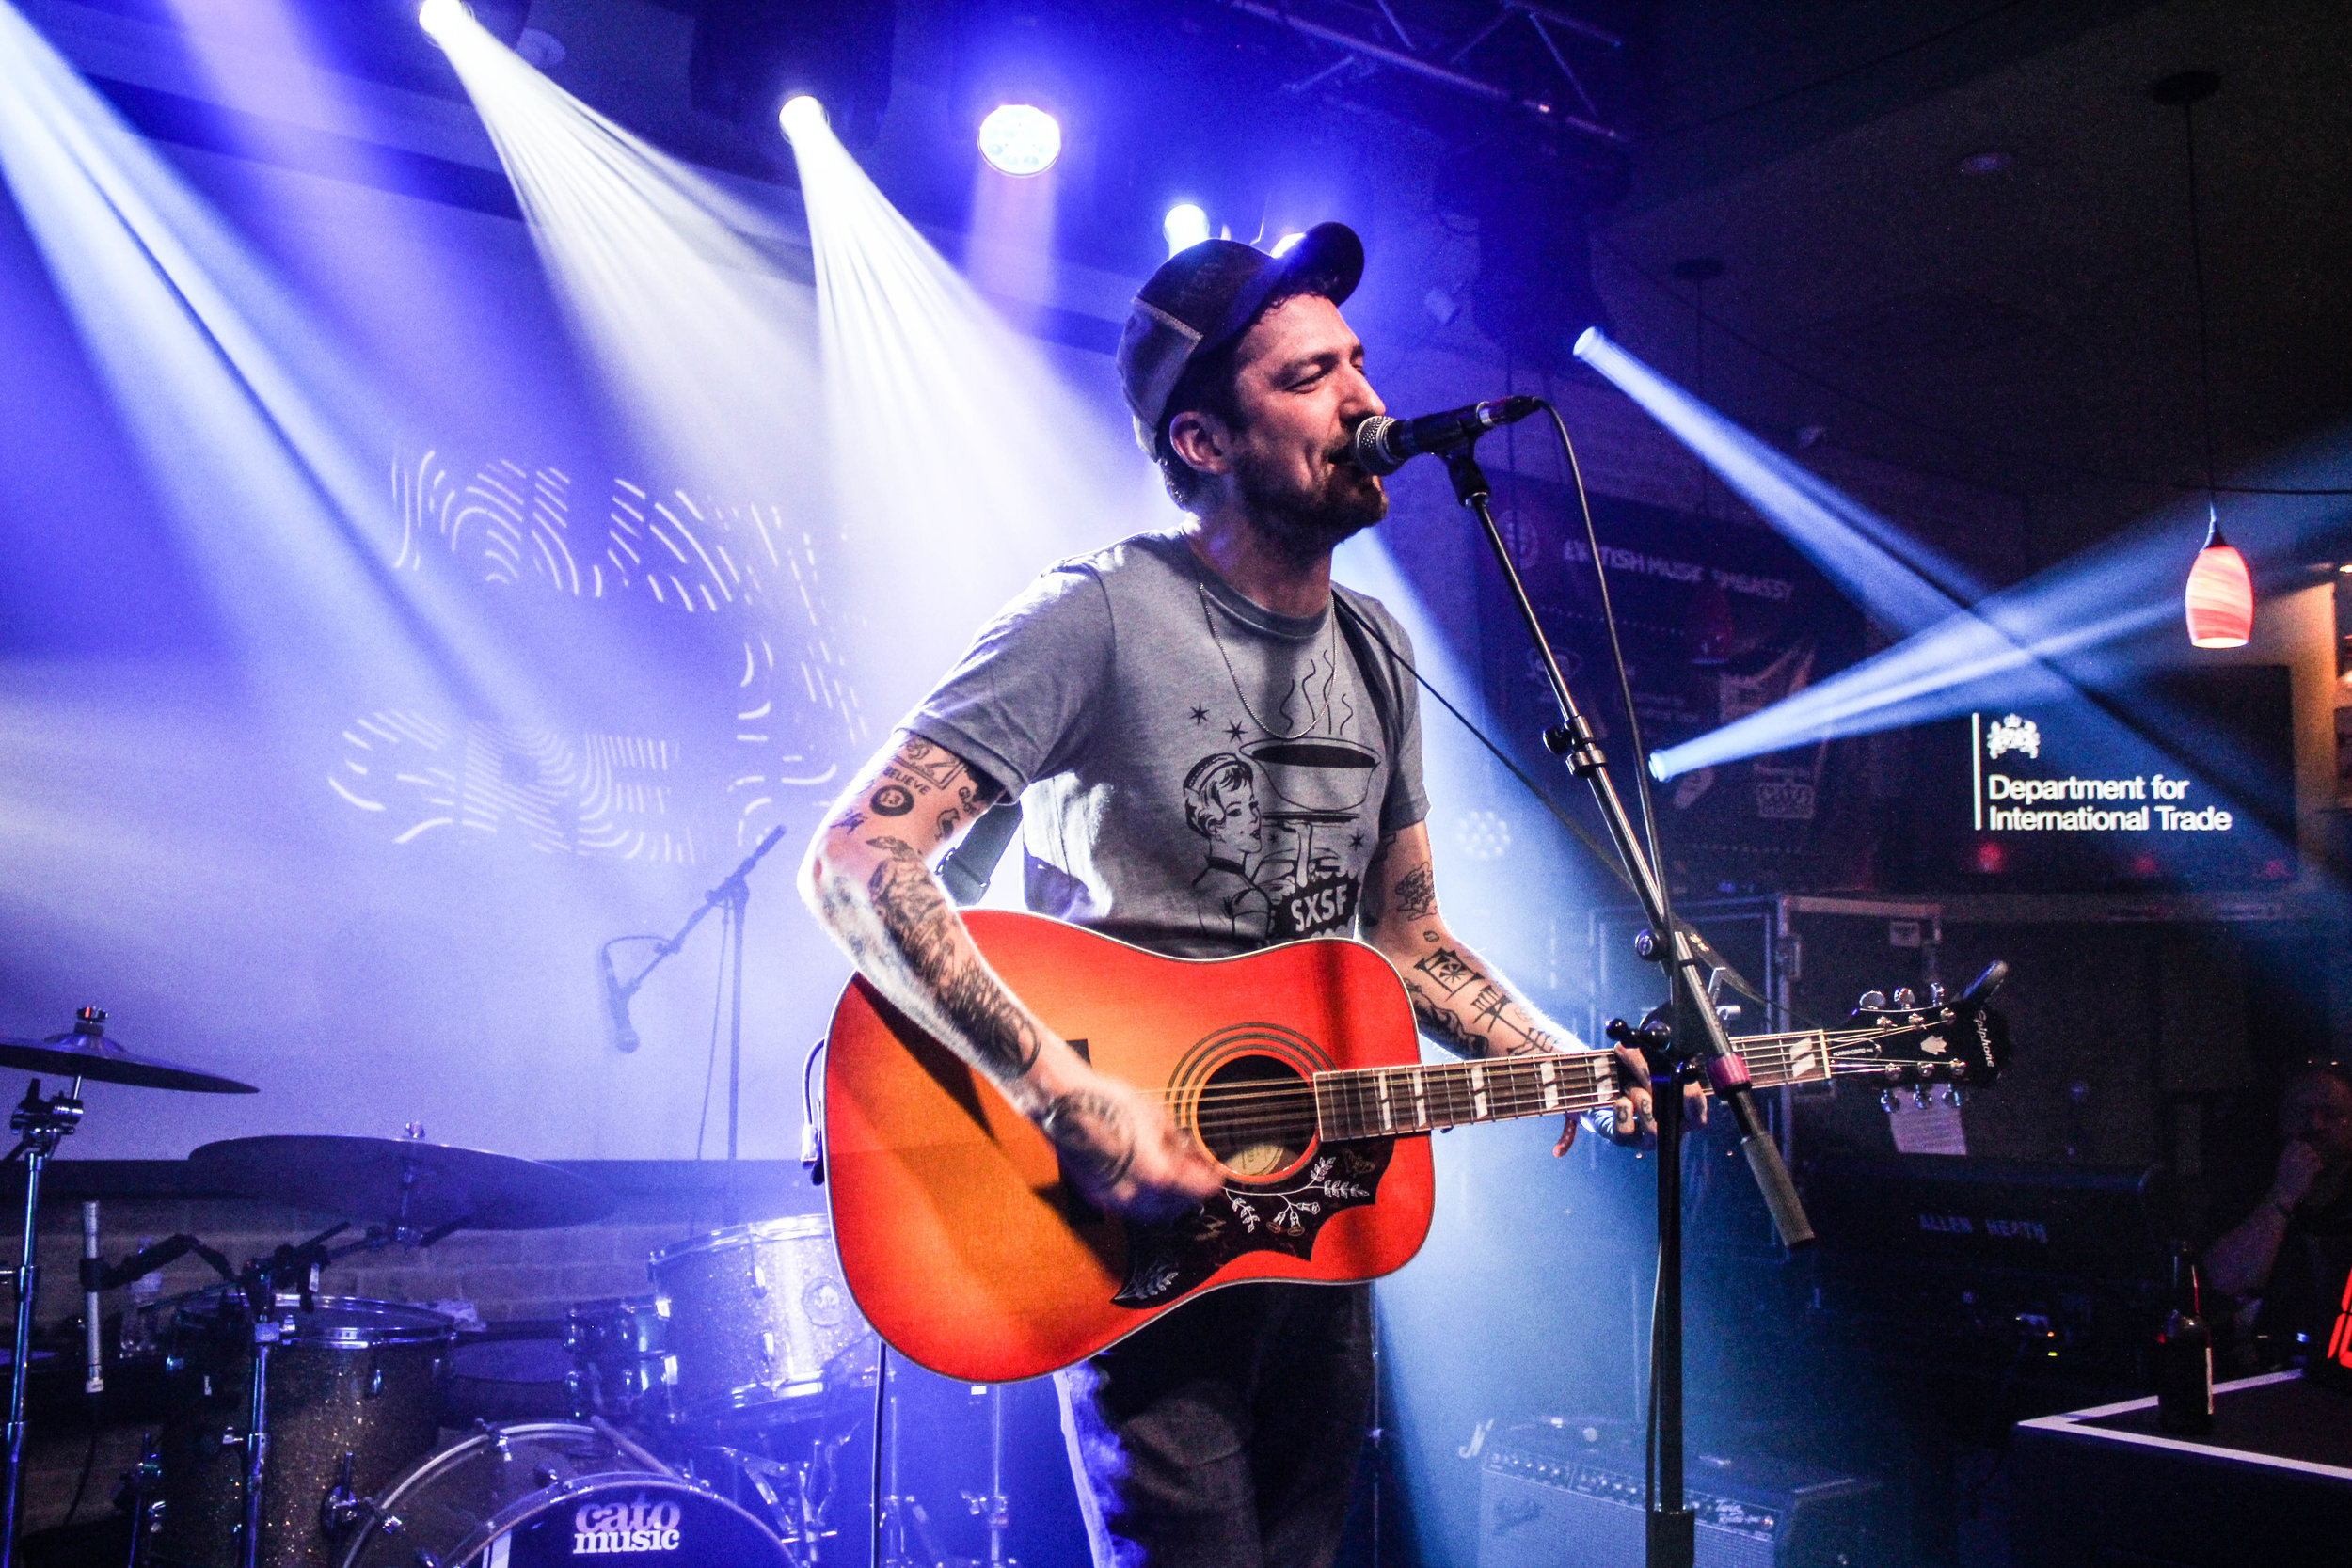 Frank Turner at SXSW - Photo © Concentus Music - Reproduction without permission not permitted